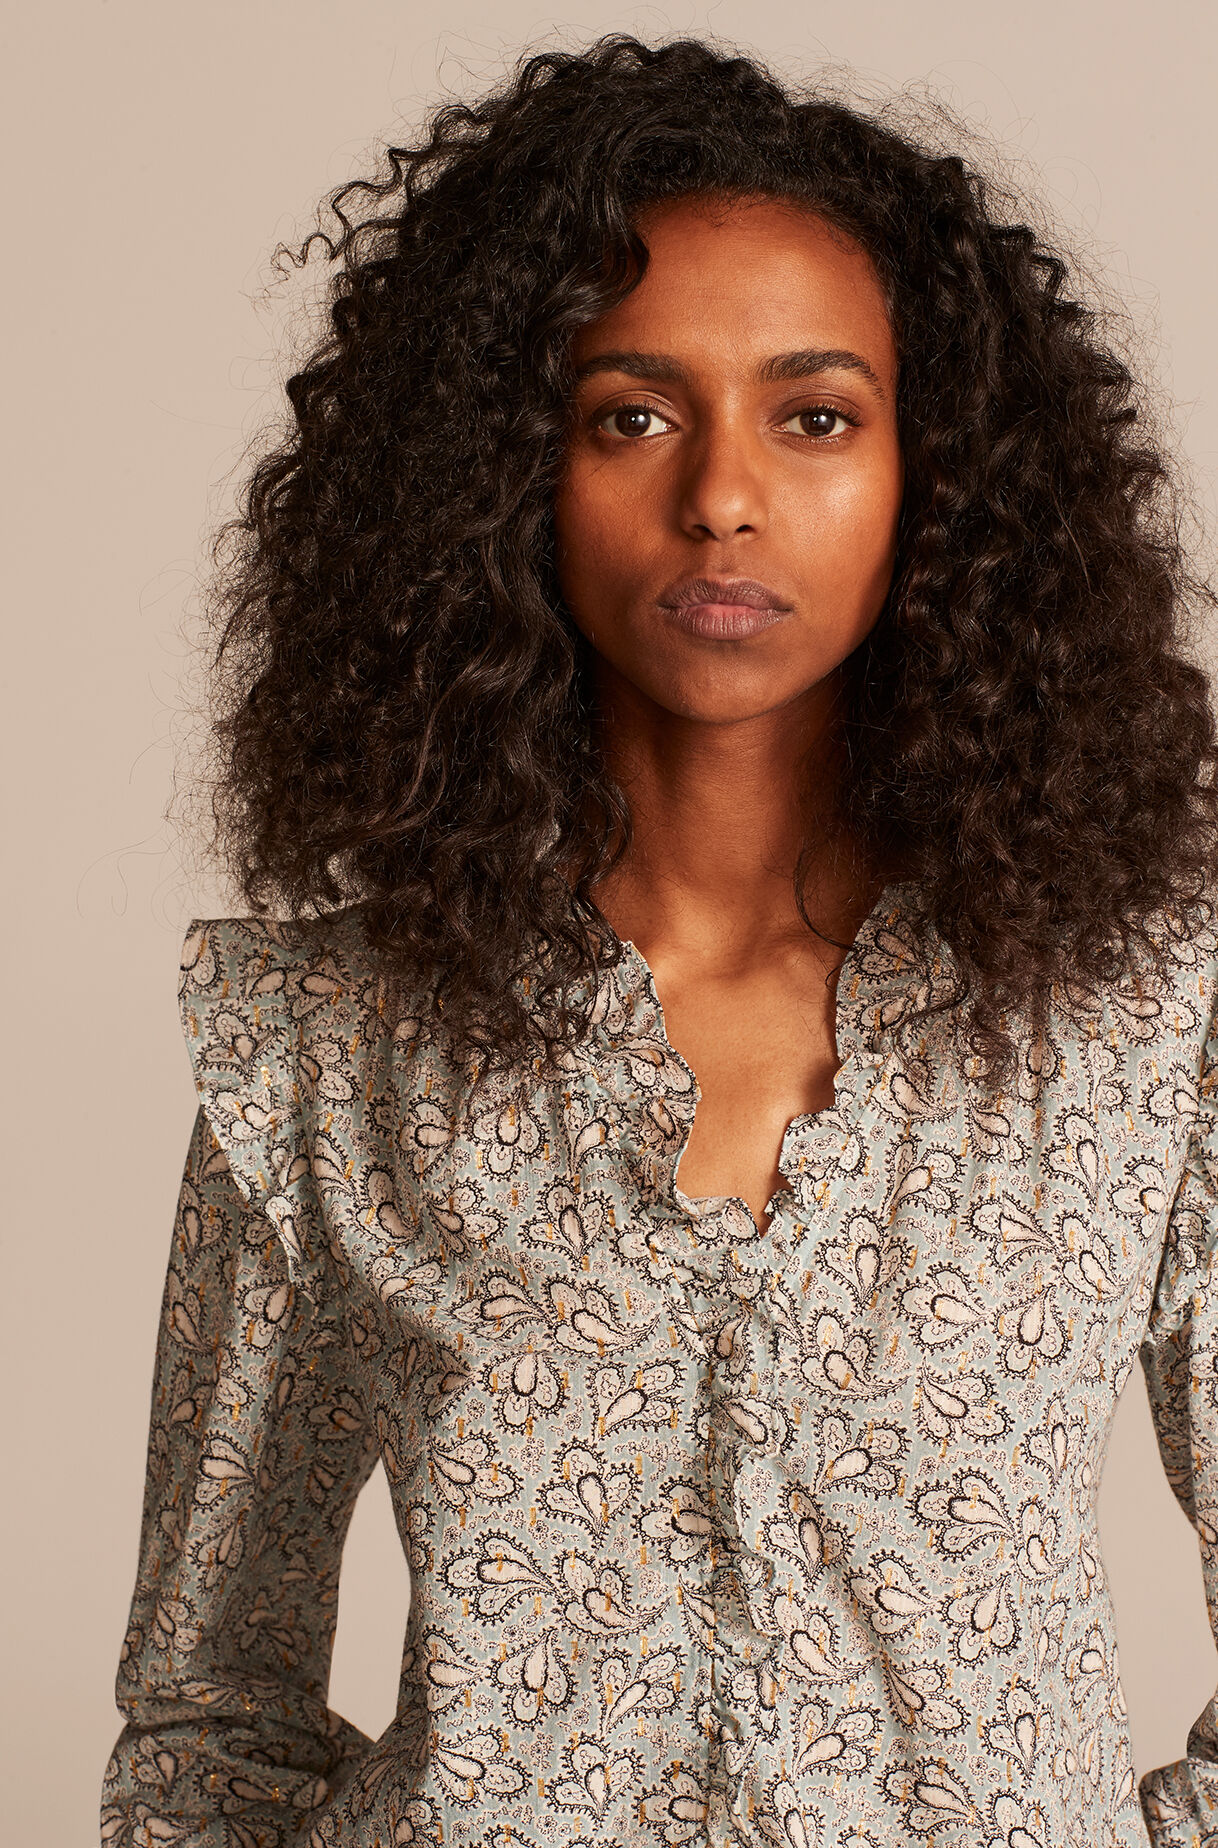 Odette Paisley Top, , large